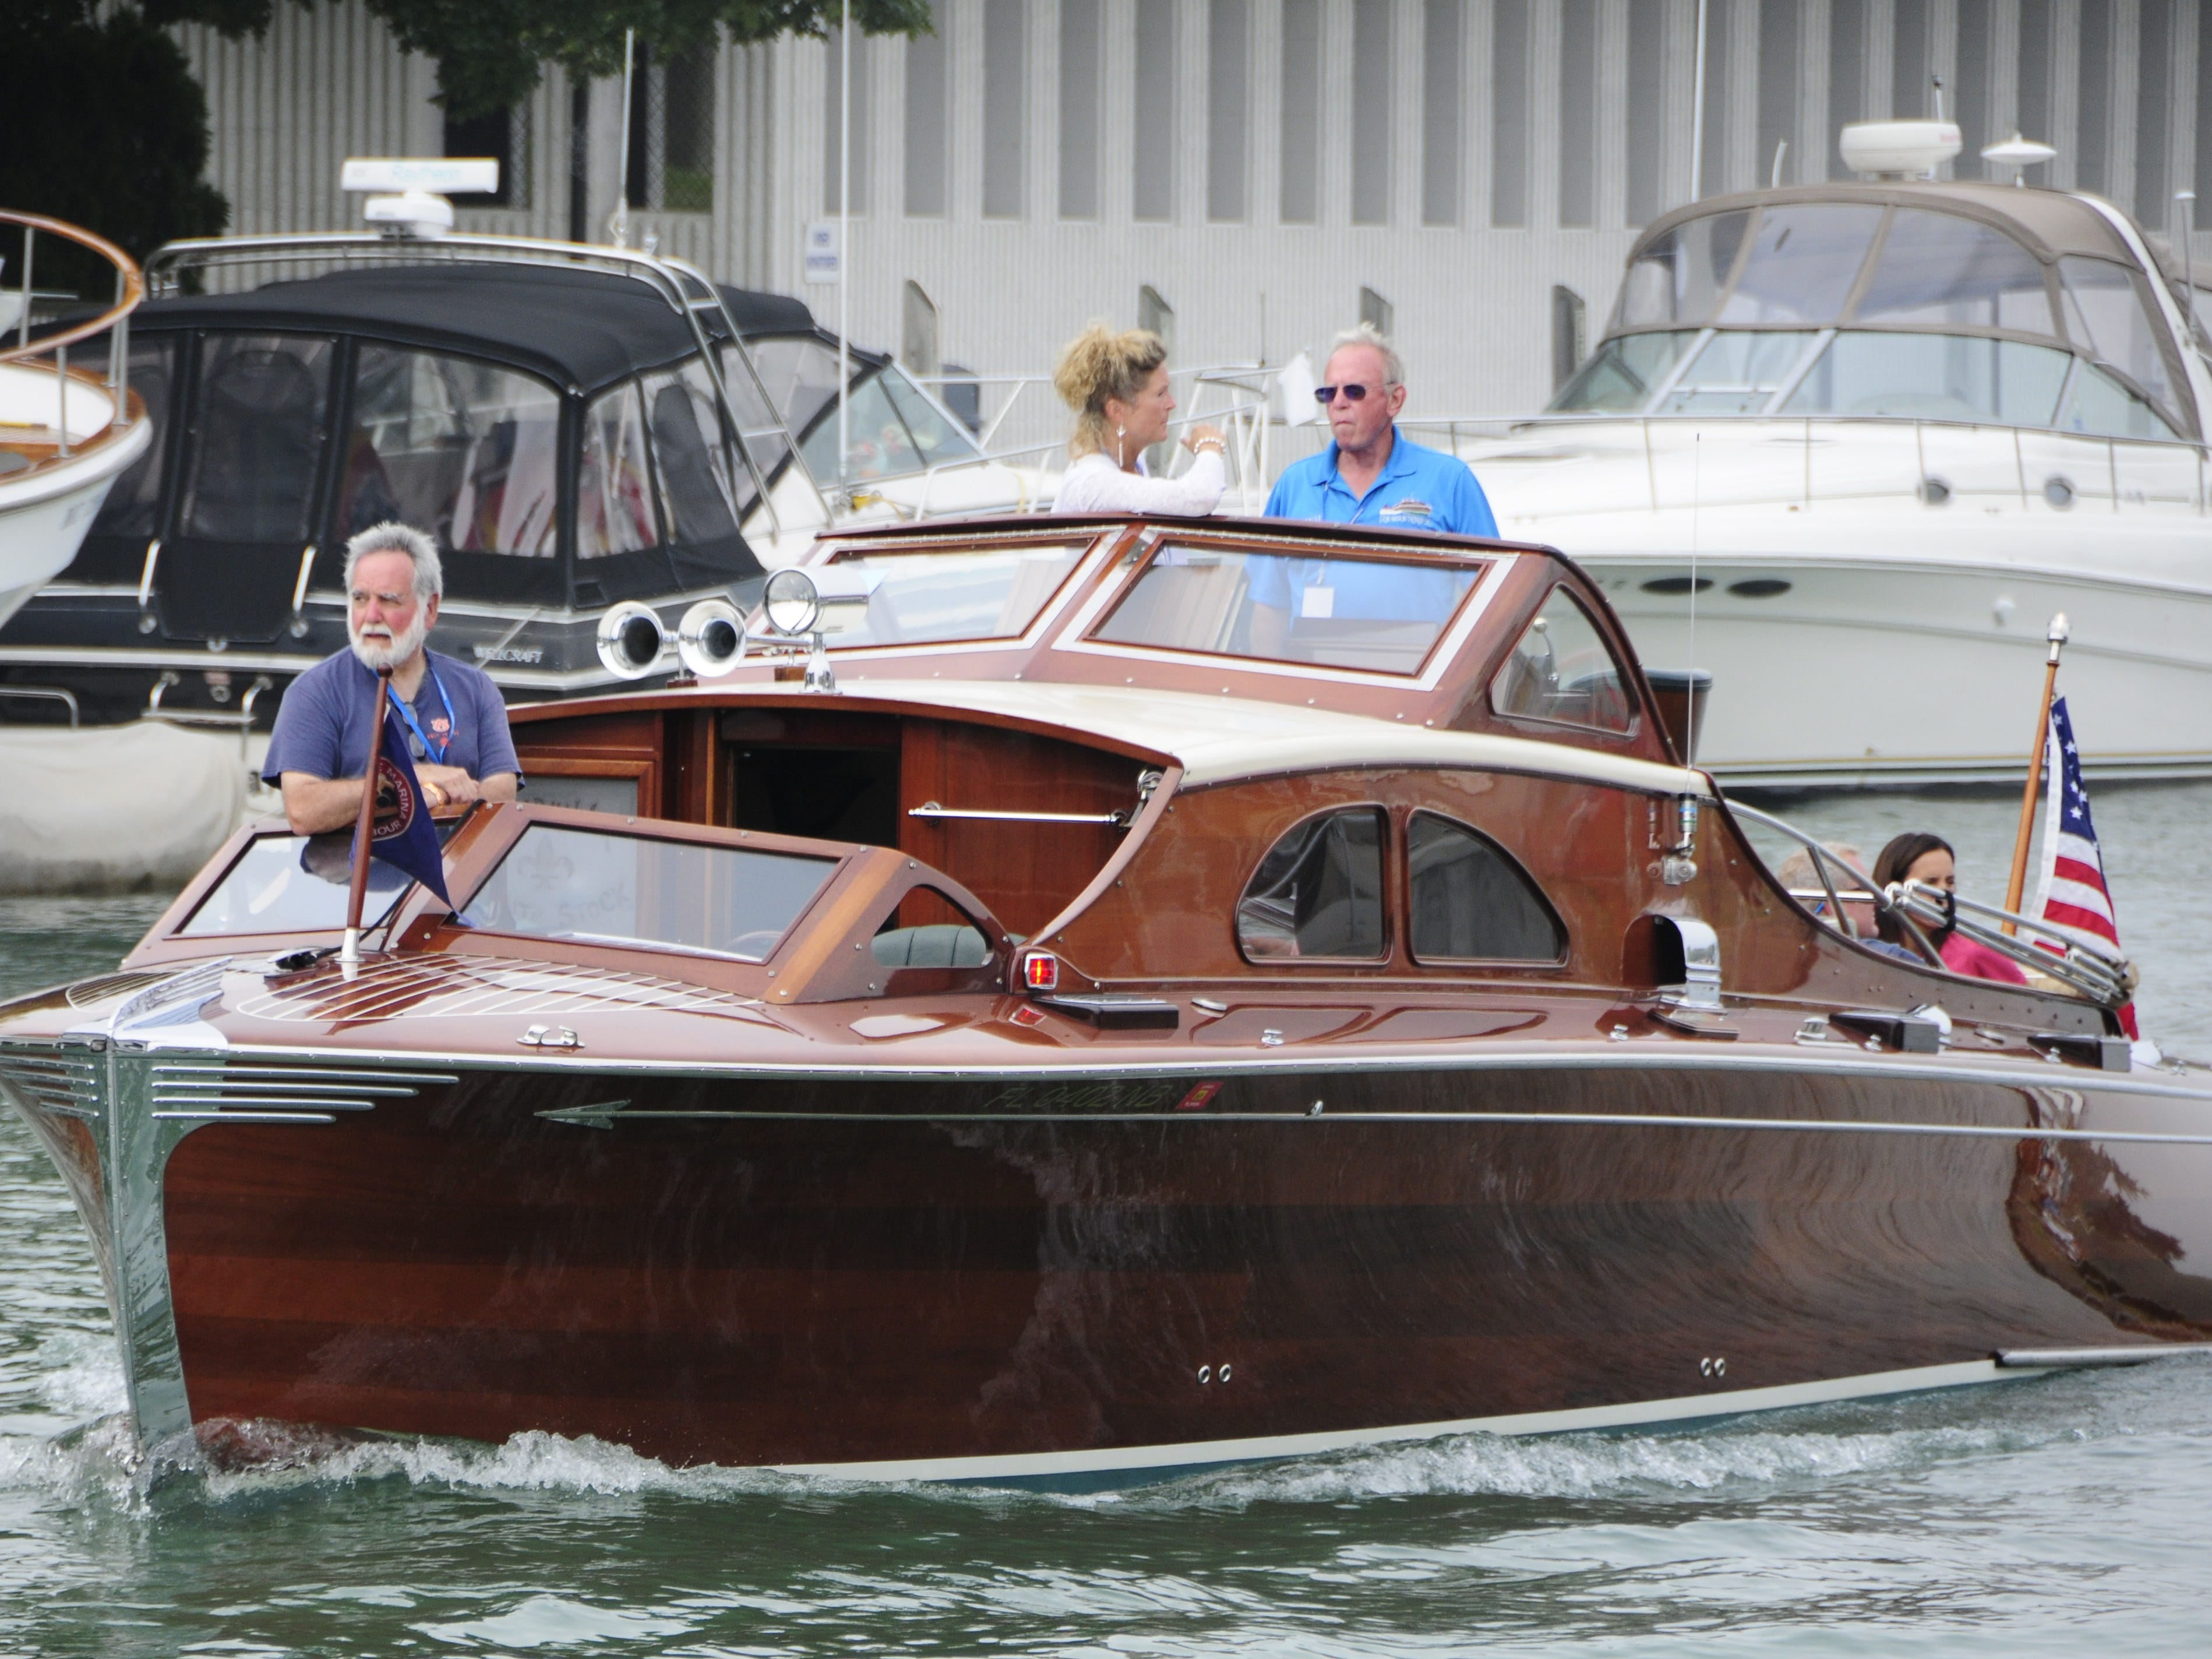 The Rumrunner motors down the Black River during the Antique and Classic Boat Society International Boat Show on Saturday, Sept. 15, 2018.